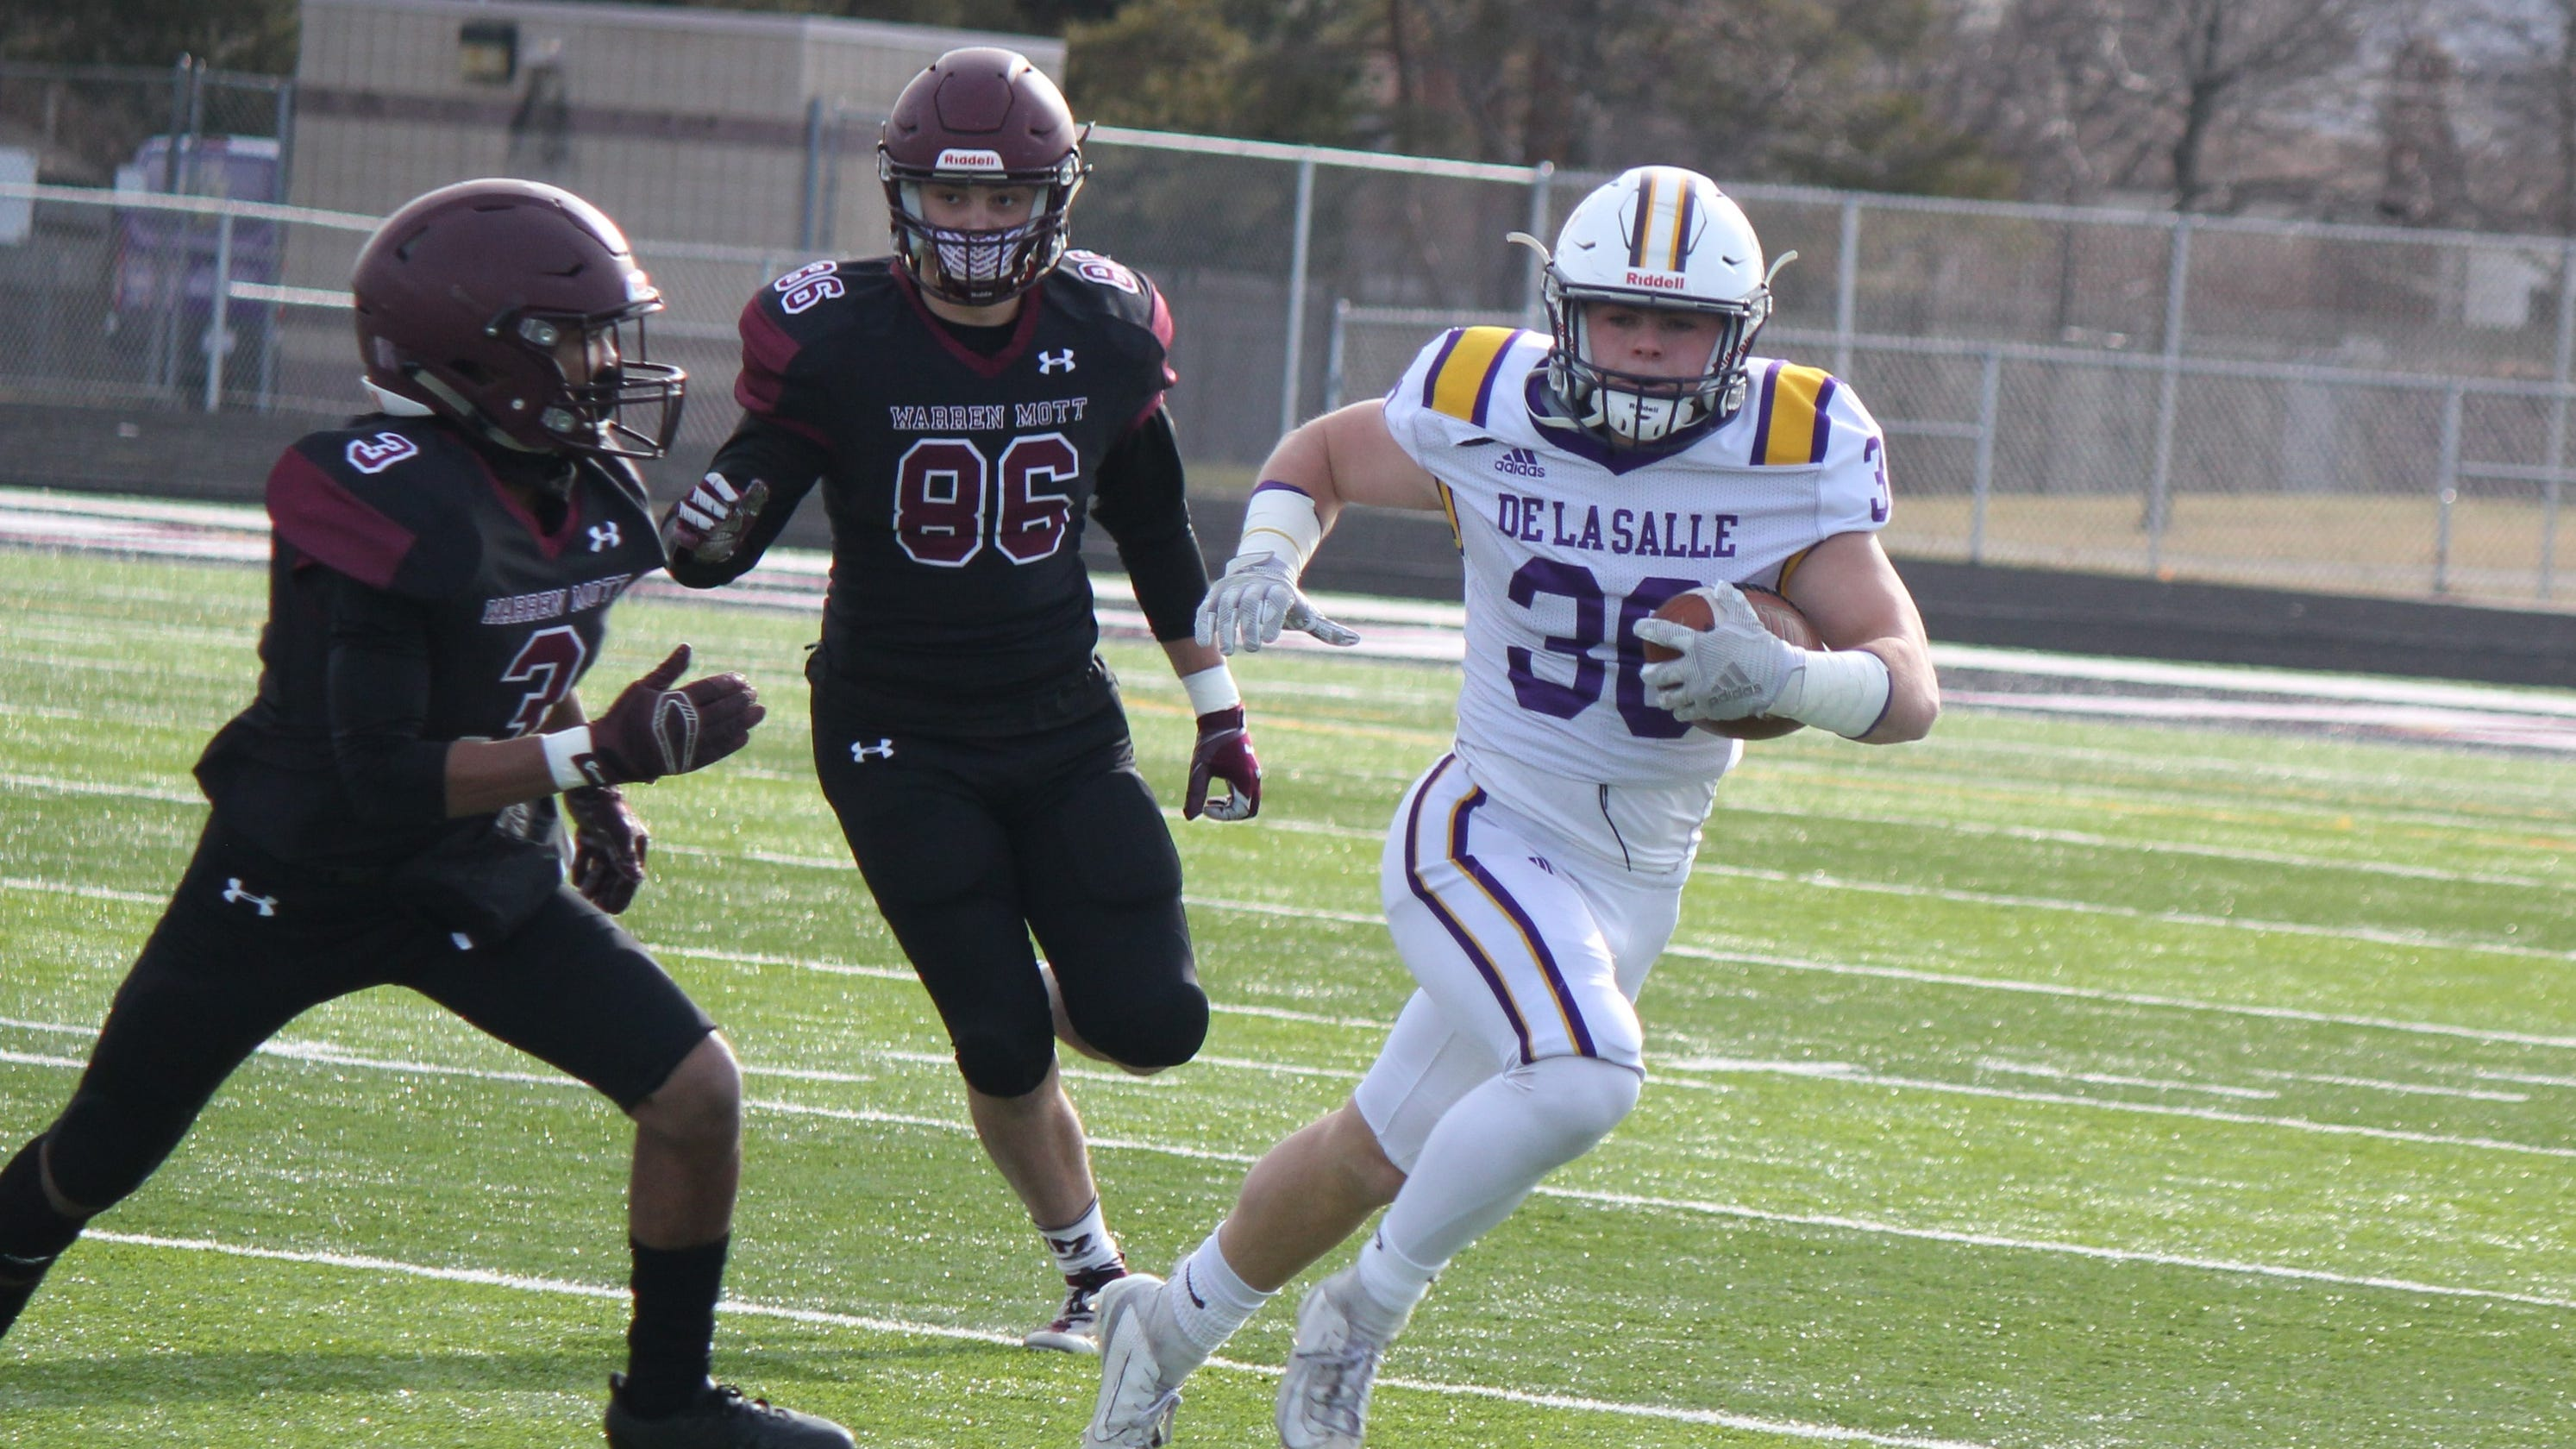 Warren De La Salle recovers from blowing 10-point lead to claim Division 2 final berth